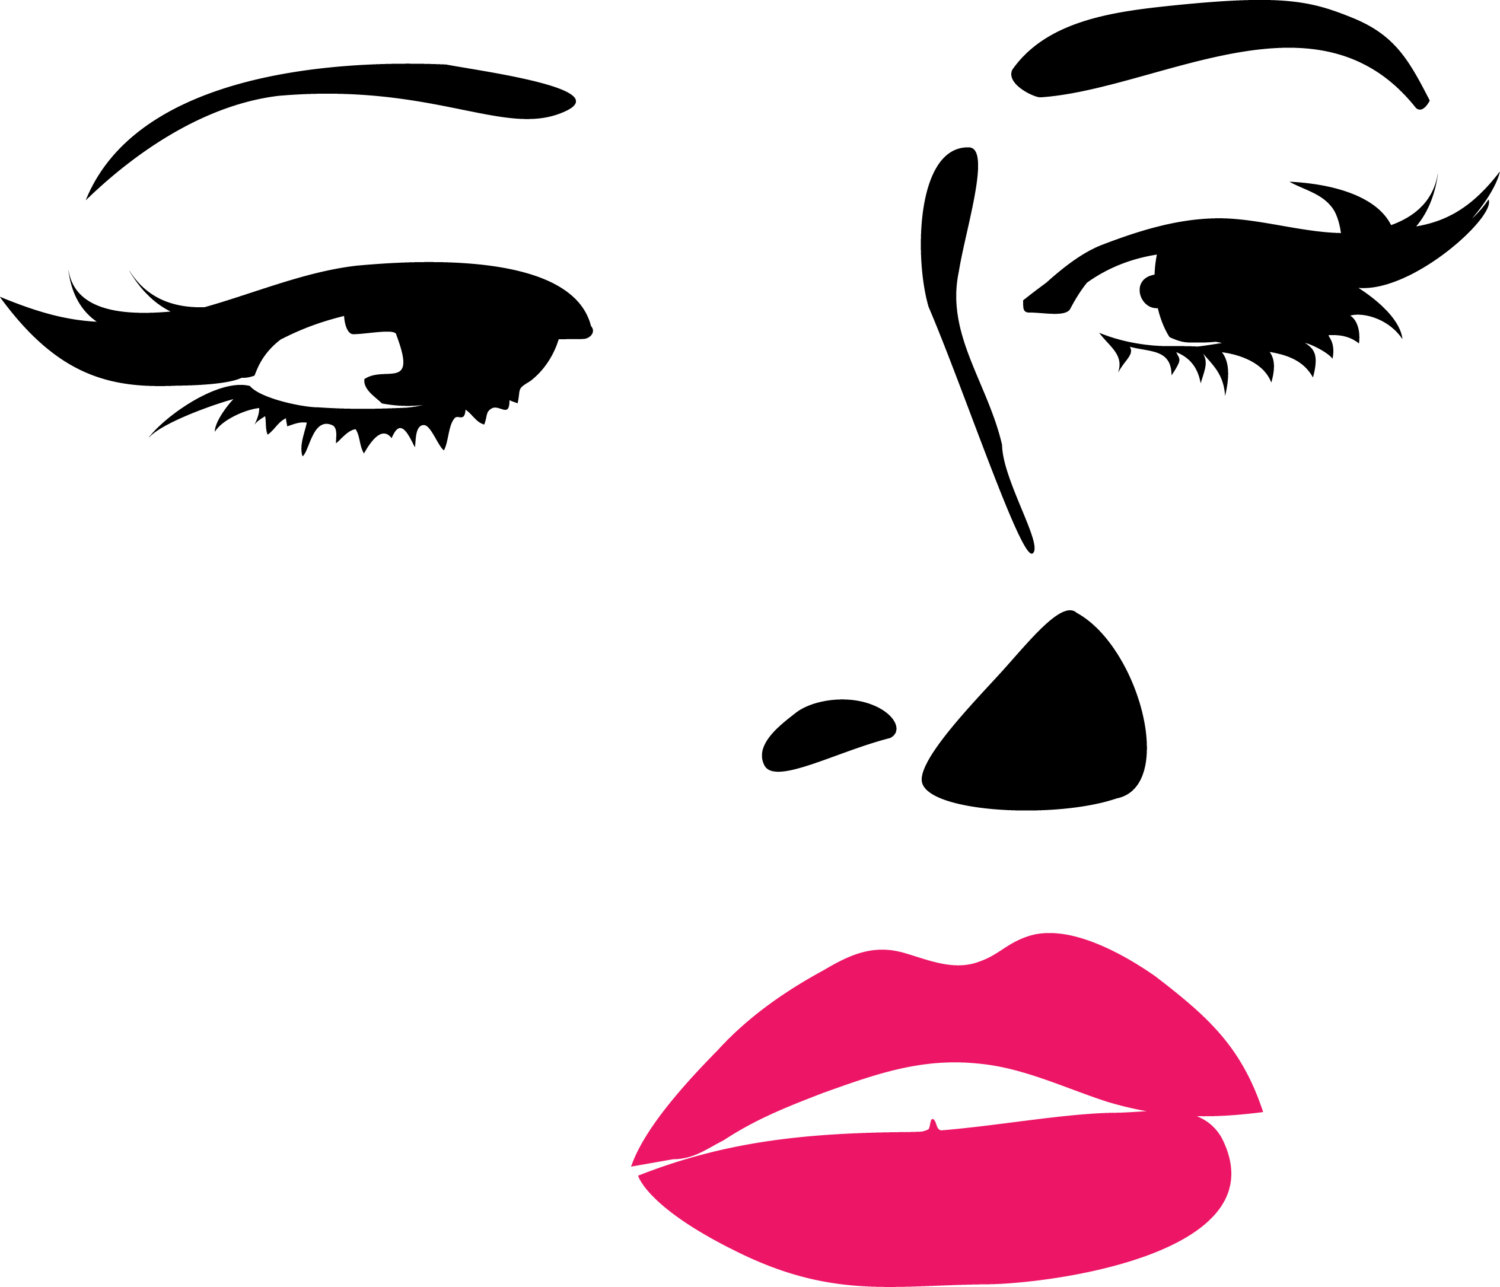 Woman s face clipart svg transparent stock Free Female Face Cliparts, Download Free Clip Art, Free Clip ... svg transparent stock